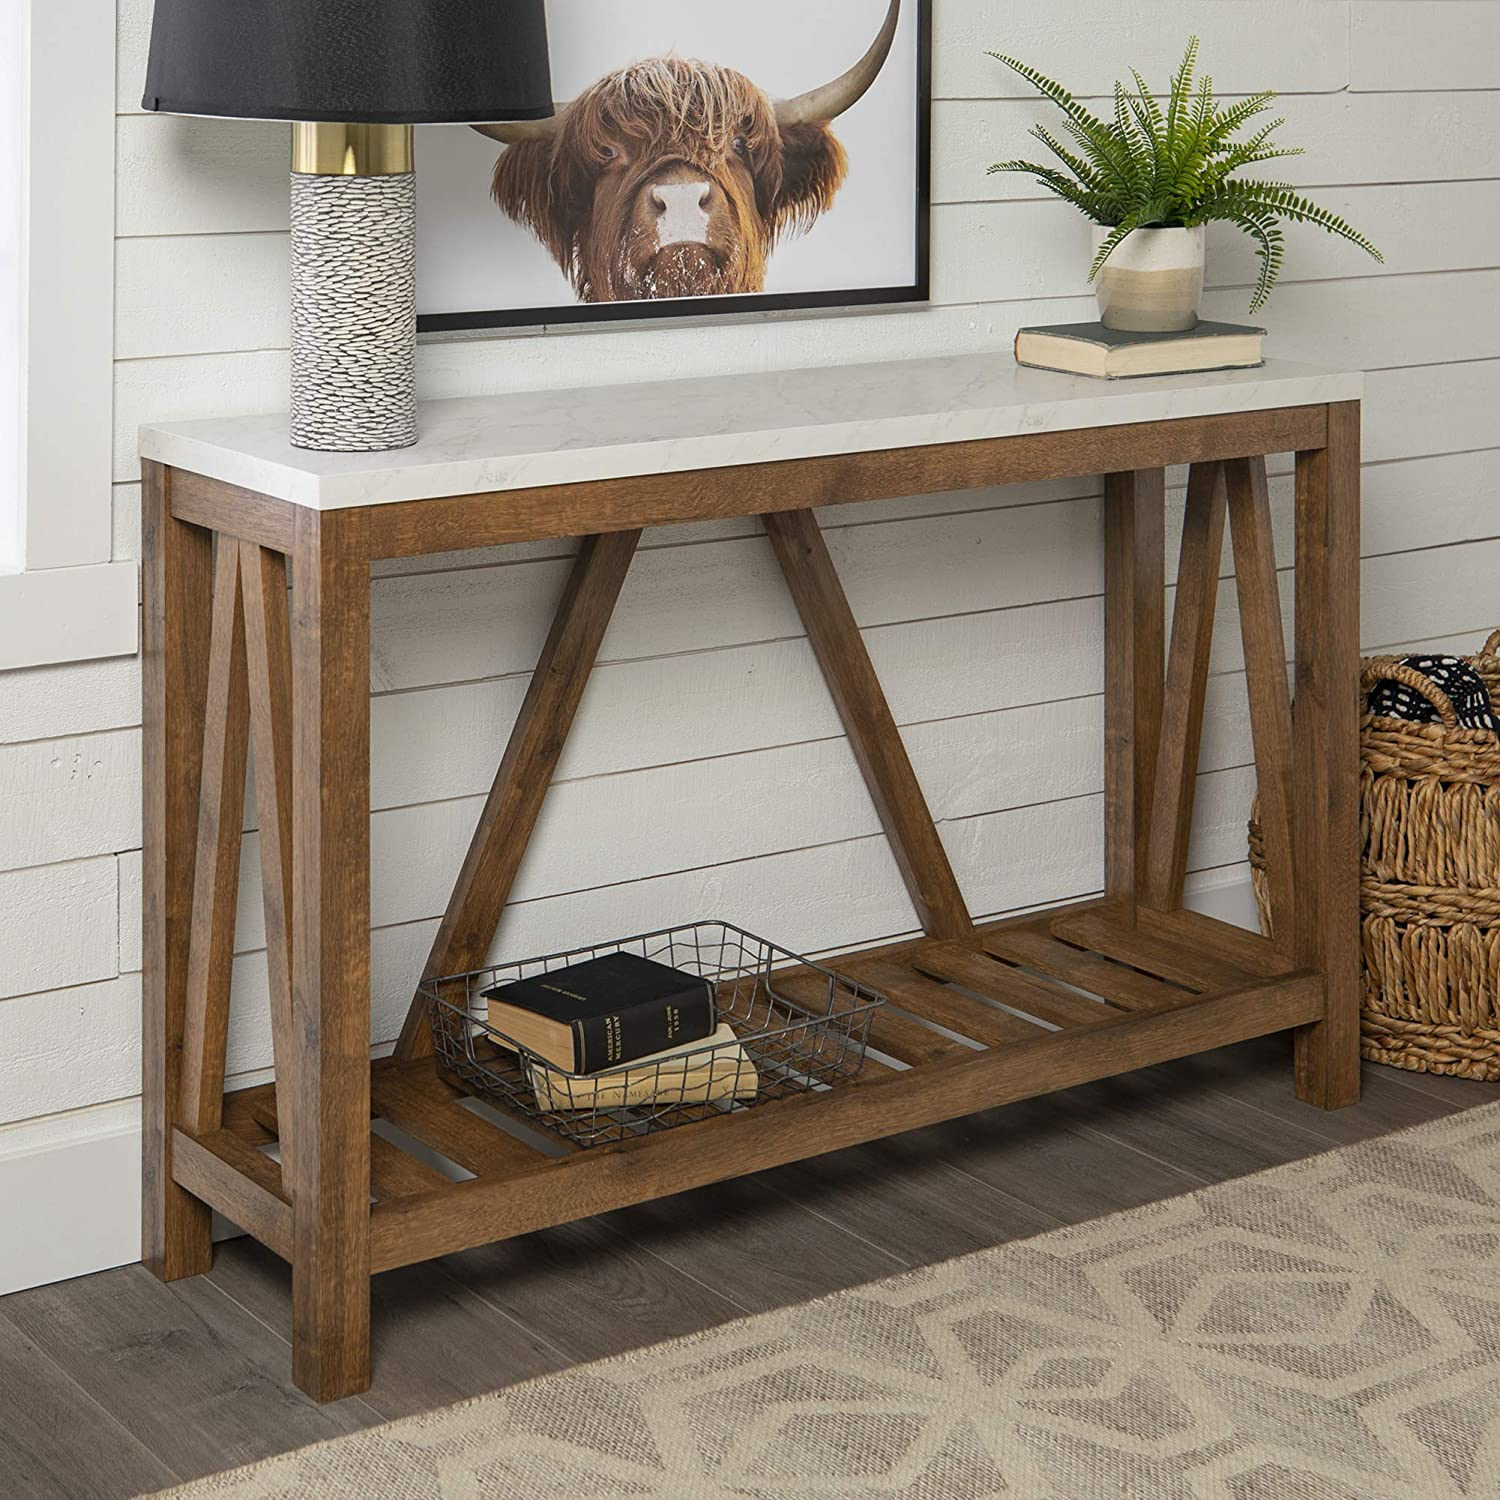 Walker Edison Modern Farmhouse Entryway Accent Table Entry Living Room, 52 Inch, White Marble/Walnut Brown